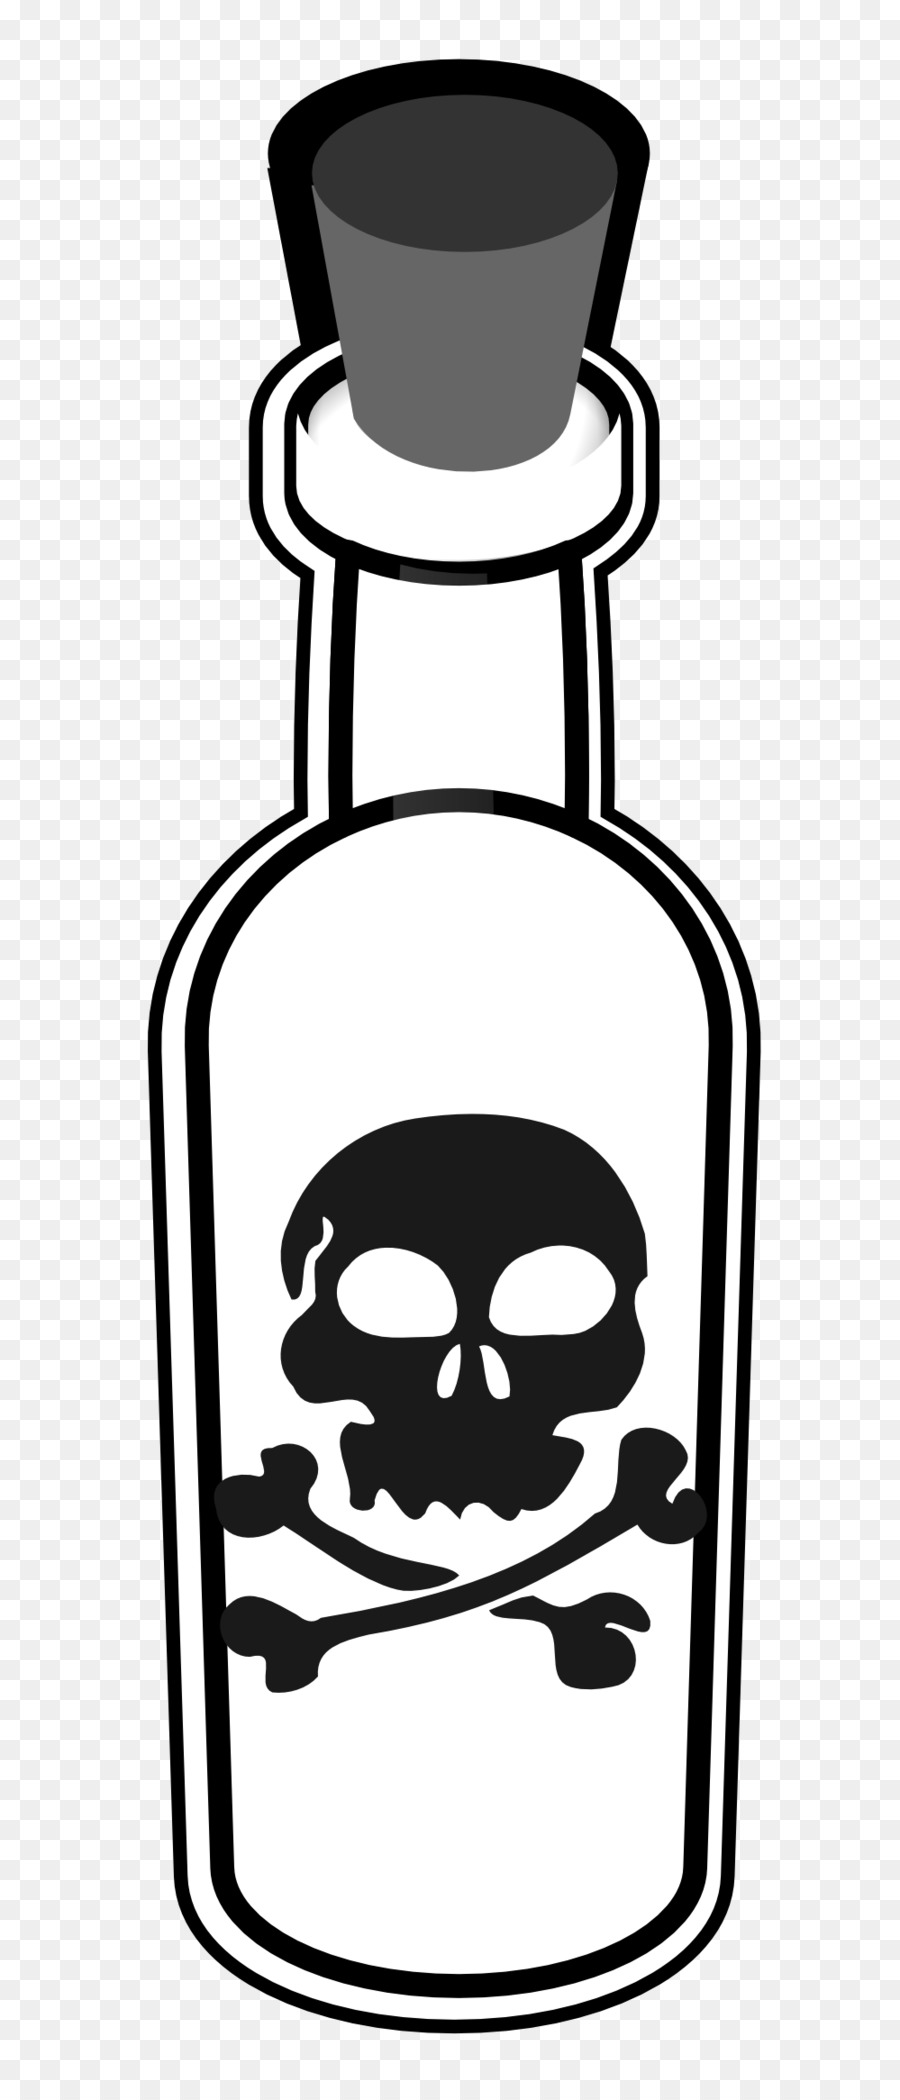 Poisoning free content clip. Poison clipart